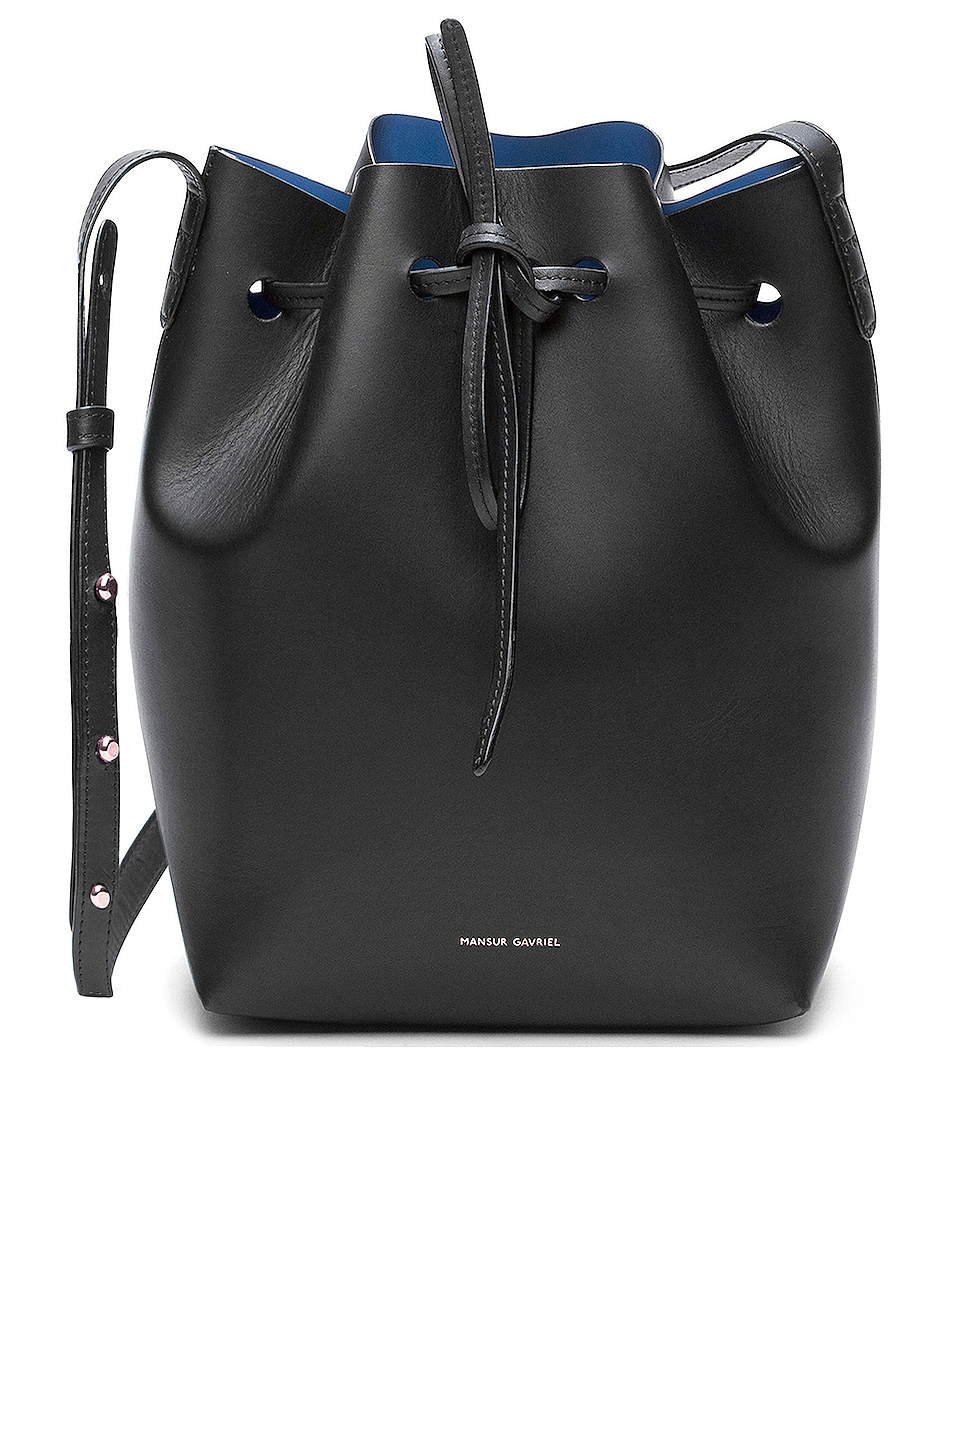 Image 1 of Mansur Gavriel Coated Mini Bucket Bag in Black & Royal